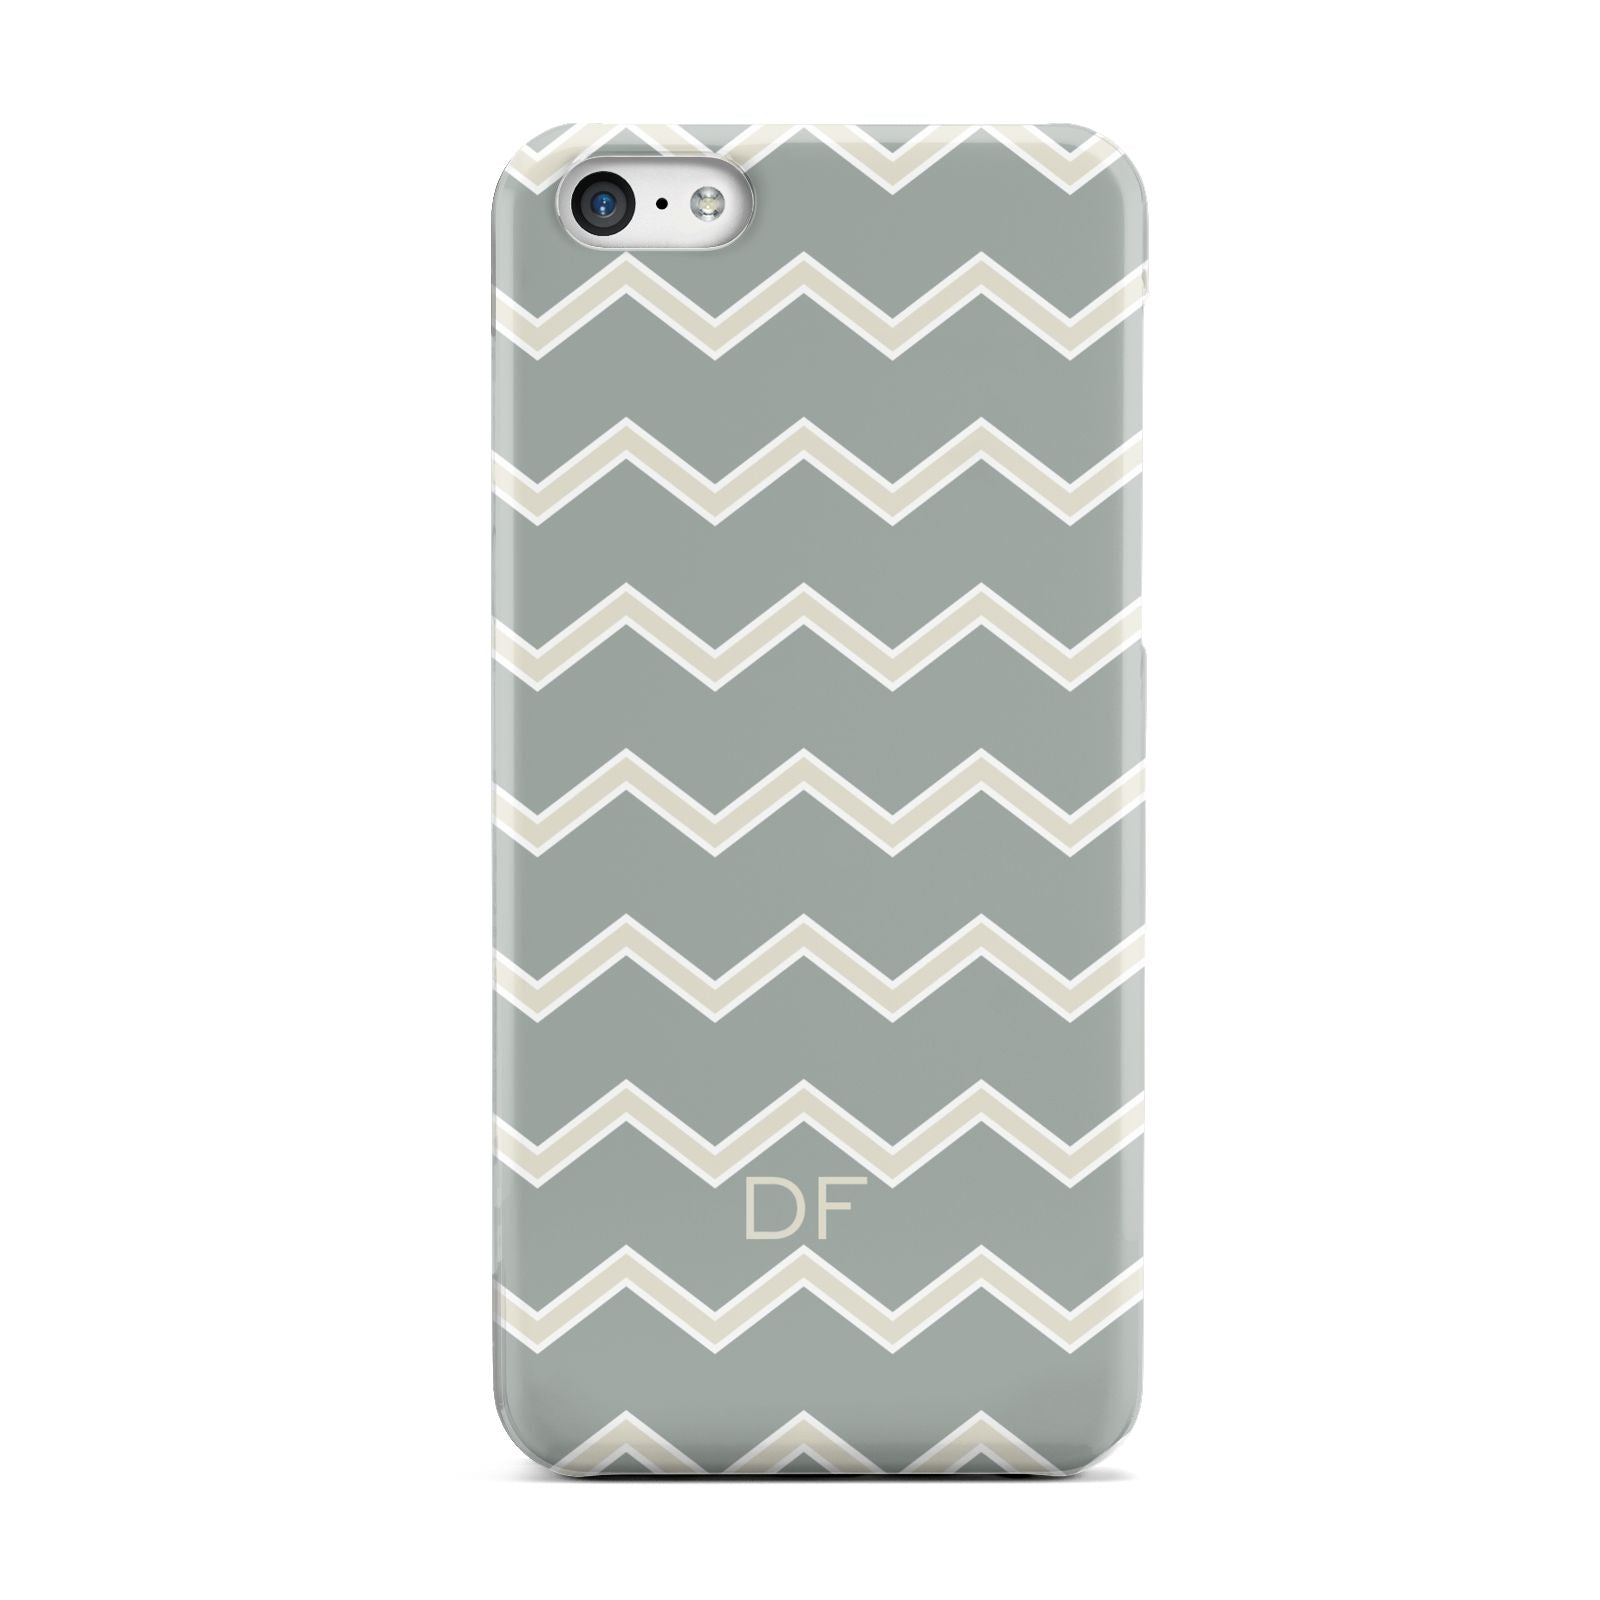 Personalised 2 Tone Chevron Apple iPhone 5c Case